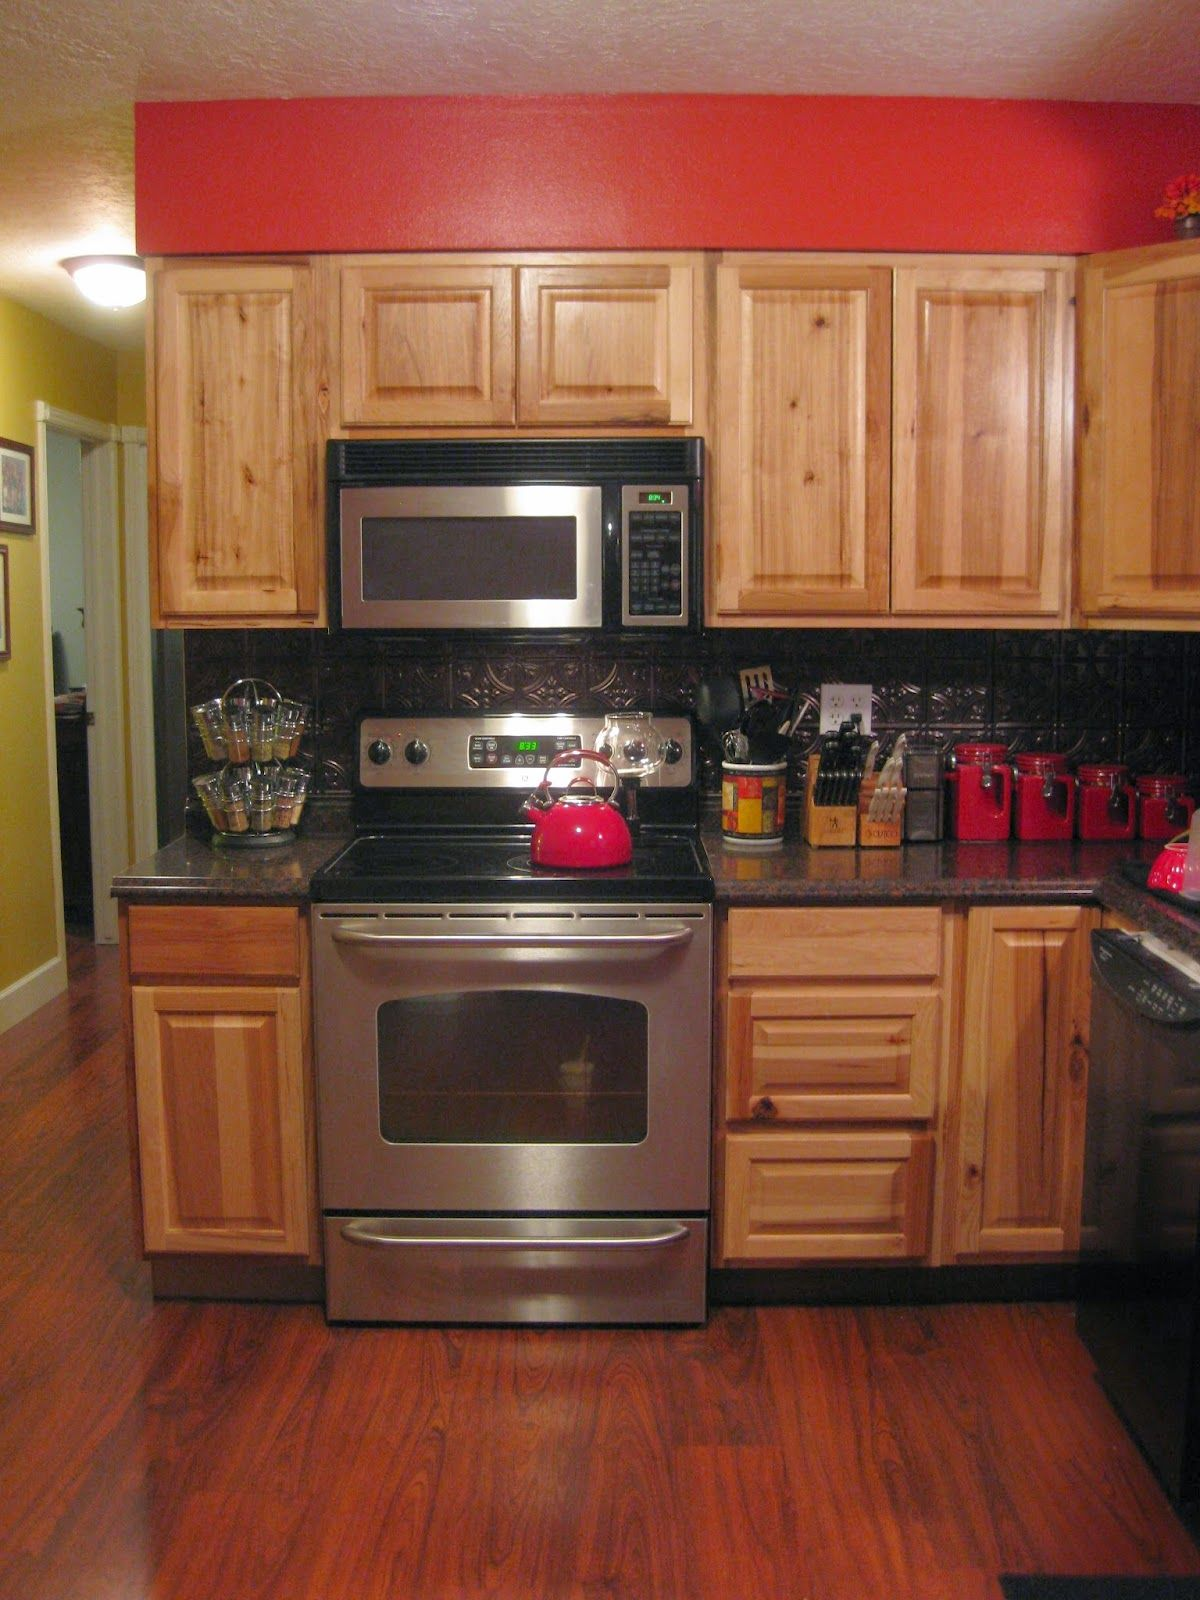 Hickory Cabinetry From Home Depot, Cherry Laminate Flooring, Stainless Steel